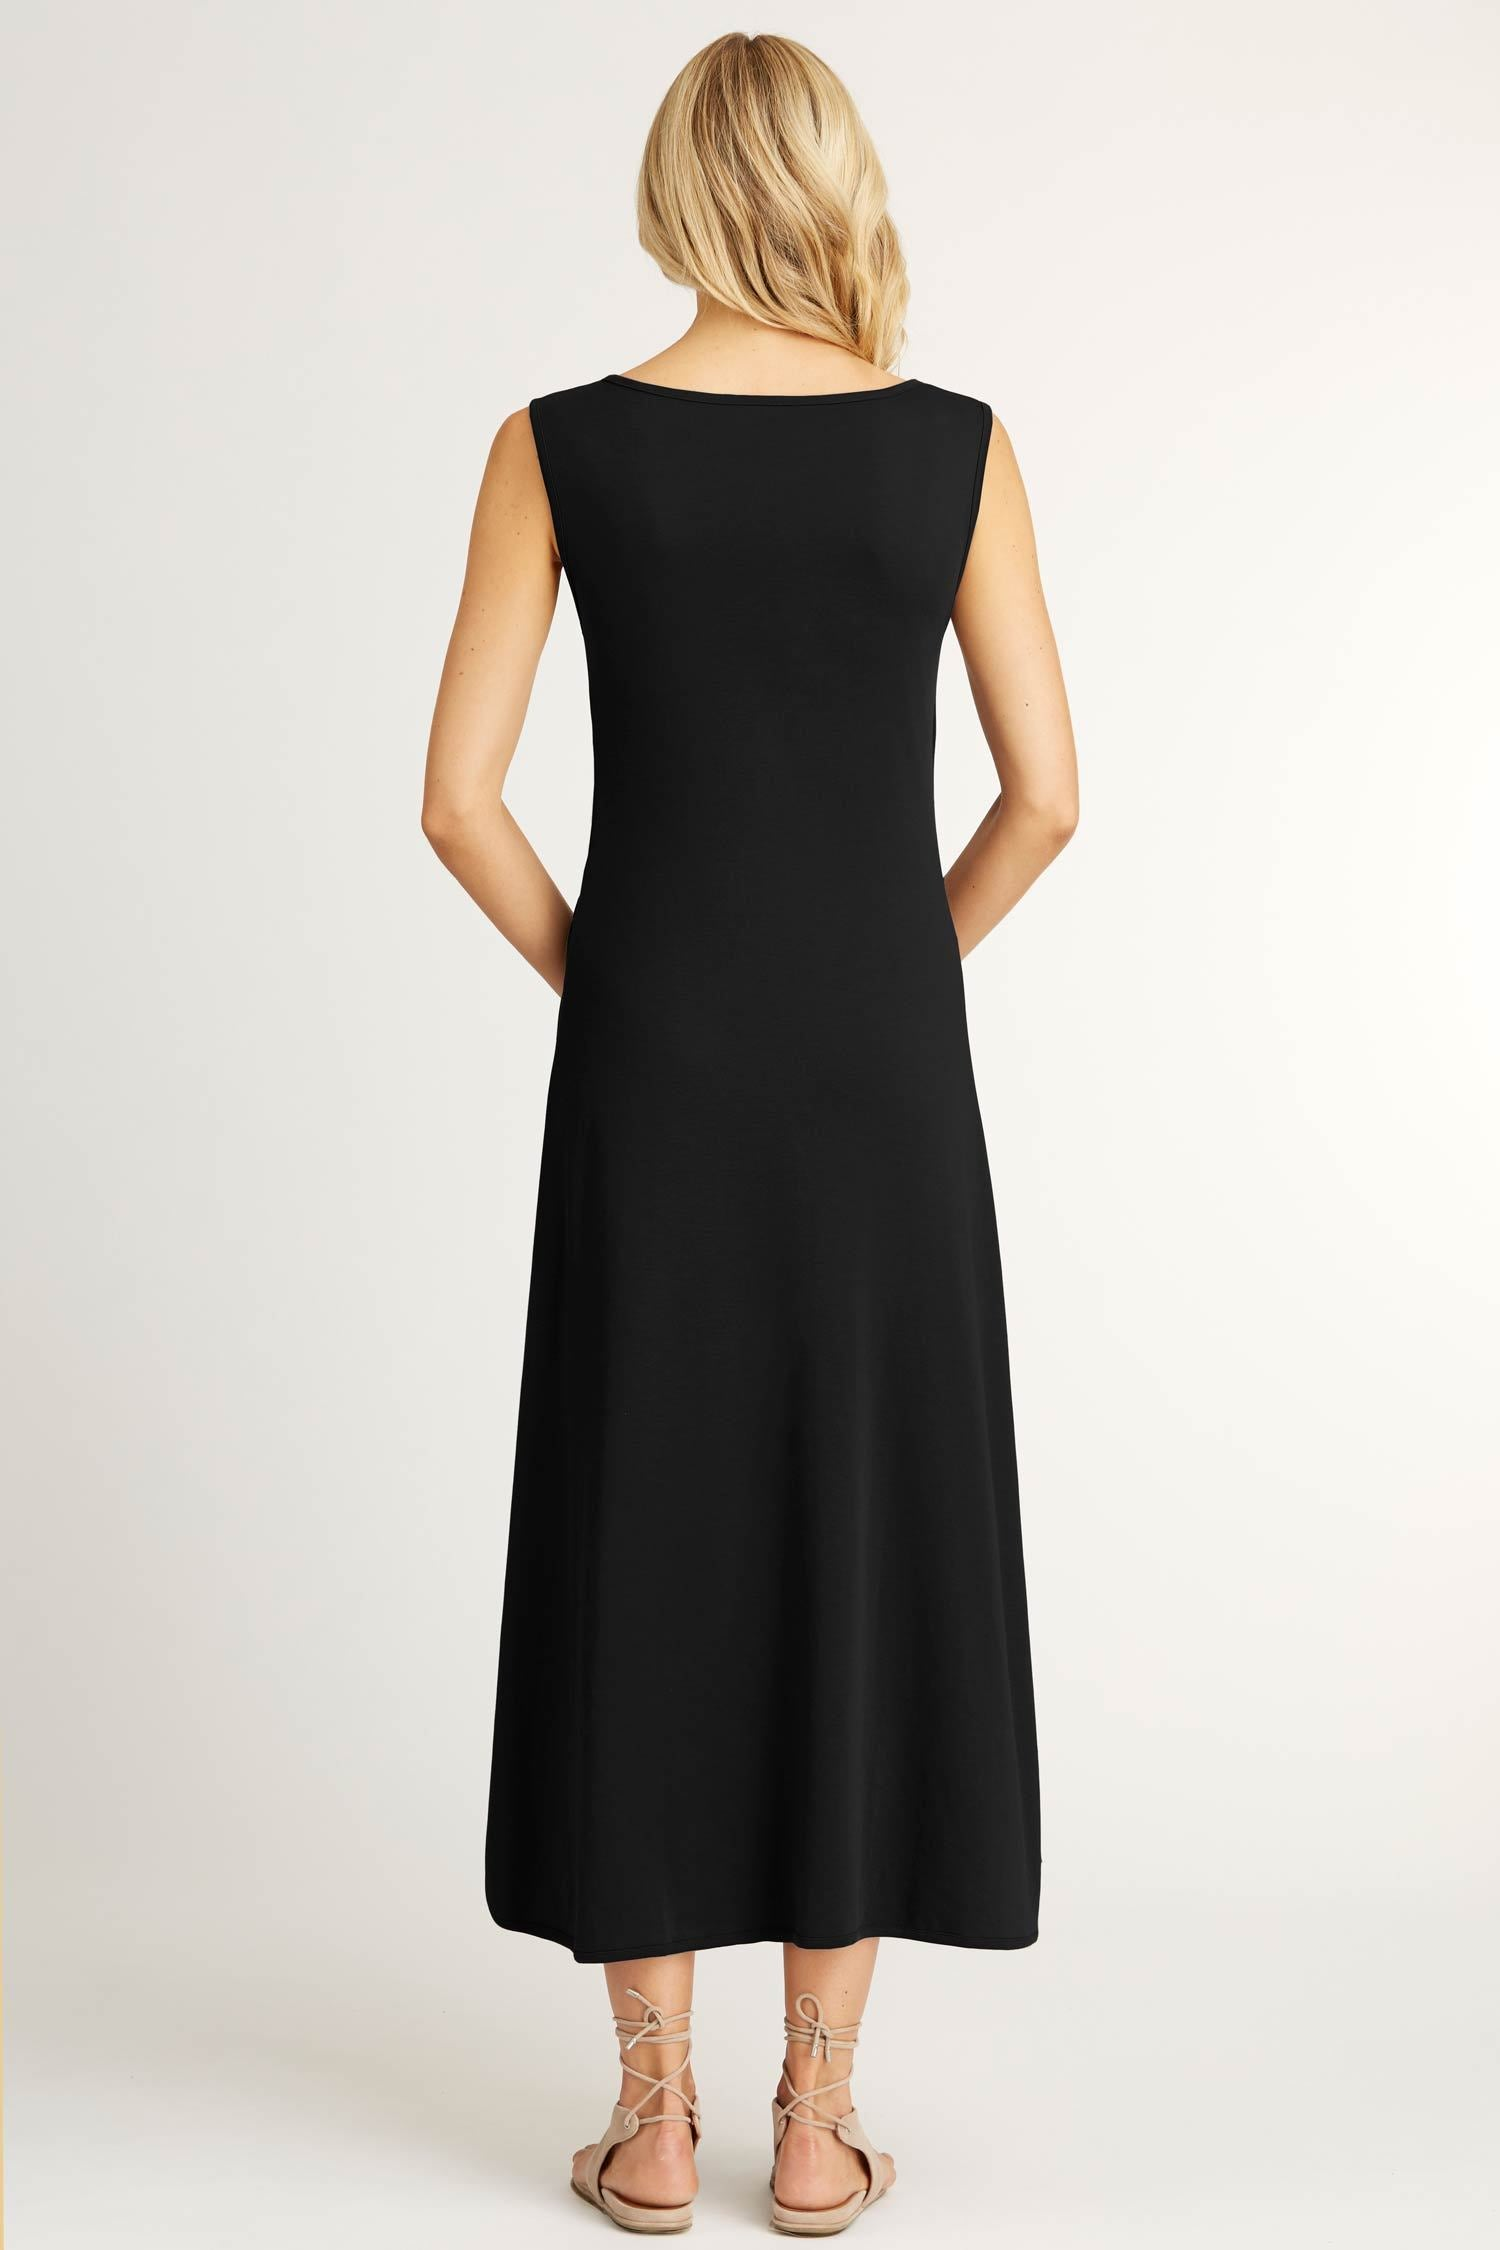 Womens Boatneck Maxi Dress in Black | Sustainable Fashion